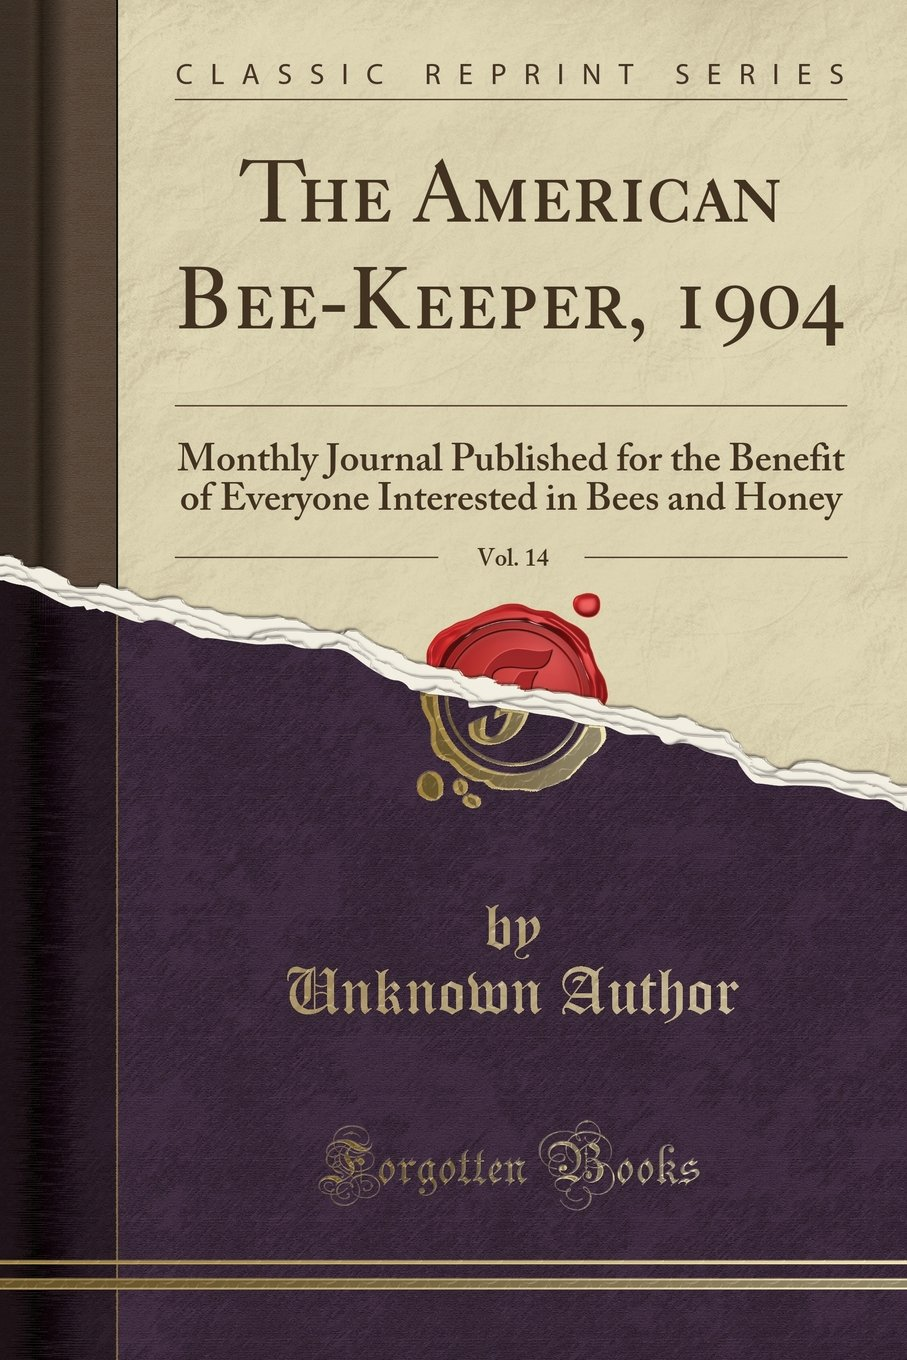 The American Bee-Keeper, 1904, Vol. 14: Monthly Journal Published for the Benefit of Everyone Interested in Bees and Honey (Classic Reprint) PDF